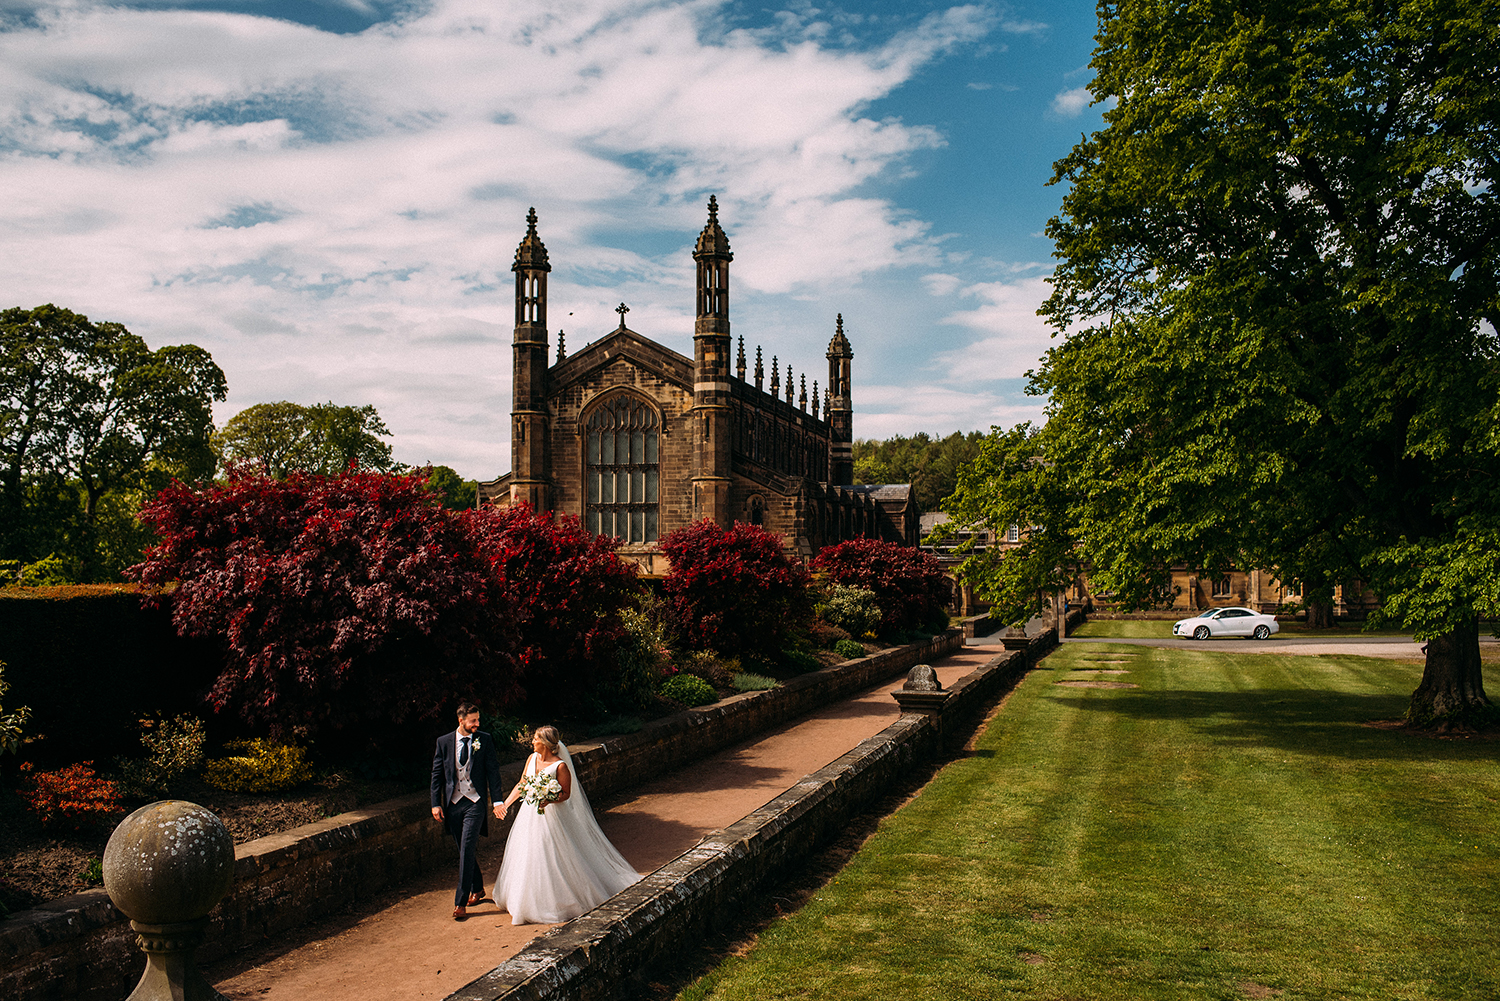 bride and groom walk away from church towards a pond